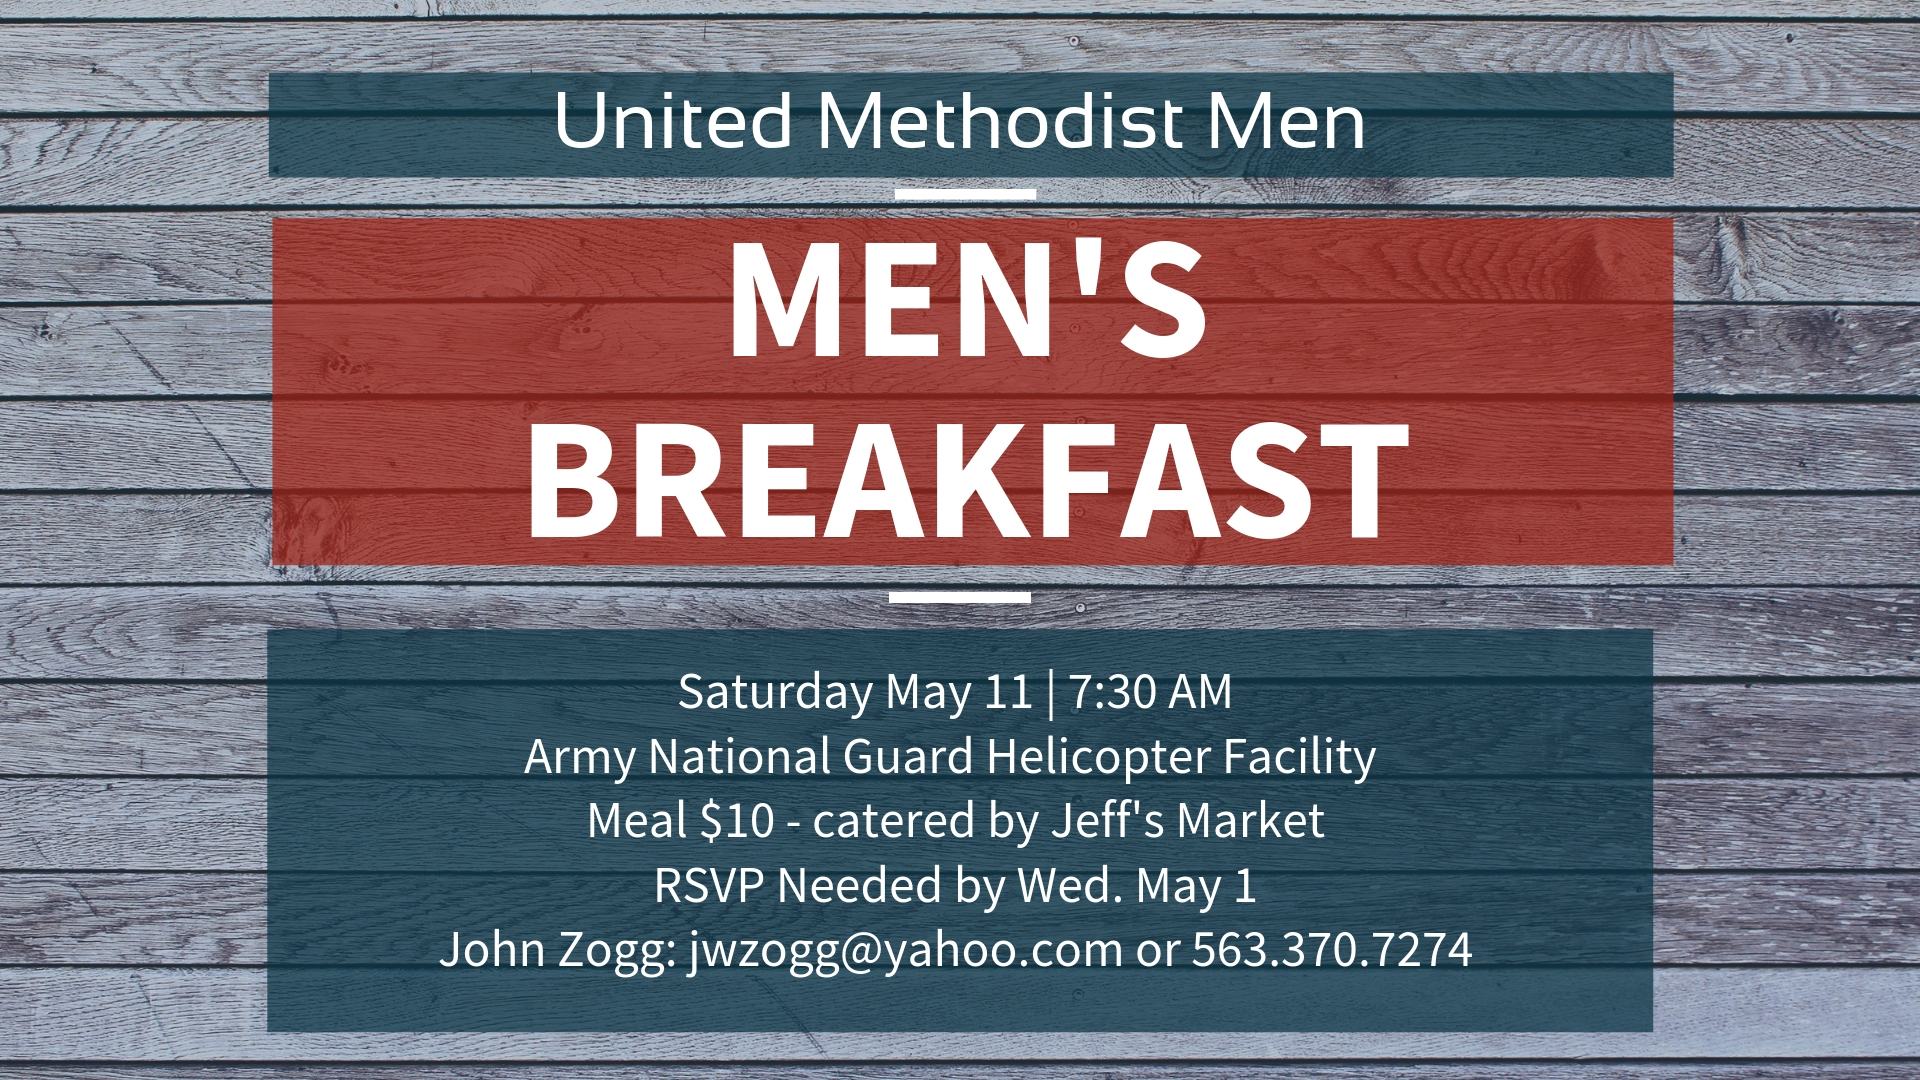 Attention ALL Christ Church Men!    Our next Men's Breakfast will be  Saturday May 11 at 7:30 AM.    We'll be meeting at the Iowa Army National Guard Helicopter Facility located at the Davenport Airport.   Please arrive by 7:30 AM. Breakfast will be catered by Jeff's Market in Durant, IA and will be served at 7:45 AM. The cost for the meal is just $10 each (including tax & tip).   We'll have our regular men's group meeting, plus CW3 Brad Baerwaldt will speak. We'll also get a close-up look at one of the CH-47 Chinook Helicopters.   Please join us for this very casual time of fellowship and breakfast. Please, invite a friend!     RSVP Needed by May 1 to John Zogg: 563.370.7274 or jwzogg@yahoo.com